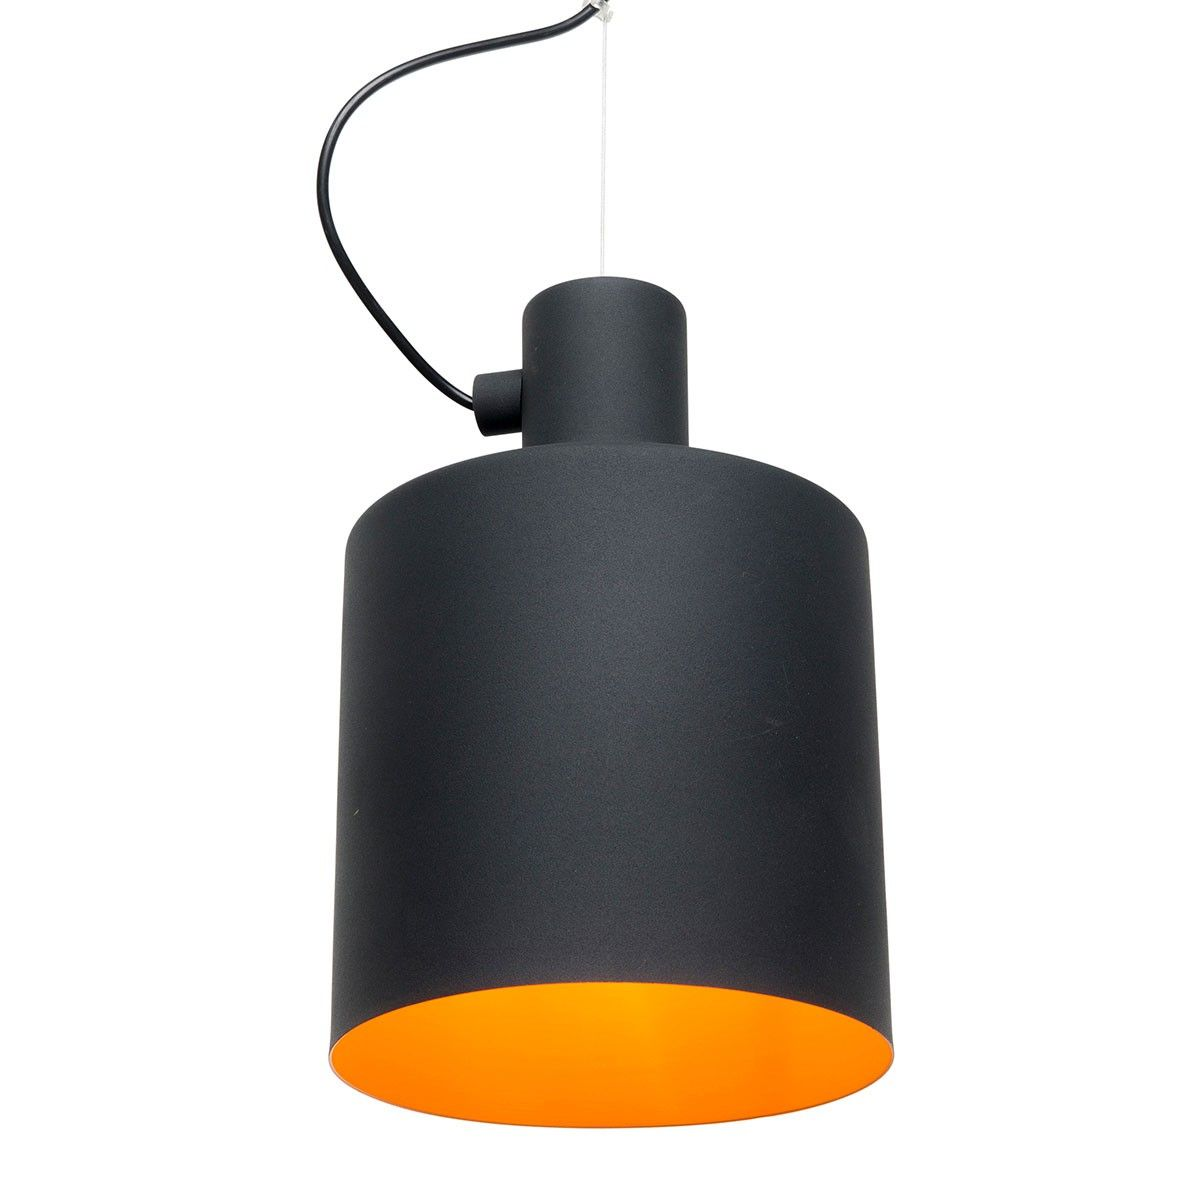 17 Best images about Brilliant Pendant Lights on Pinterest | Ombre,  Industrial metal and Metals